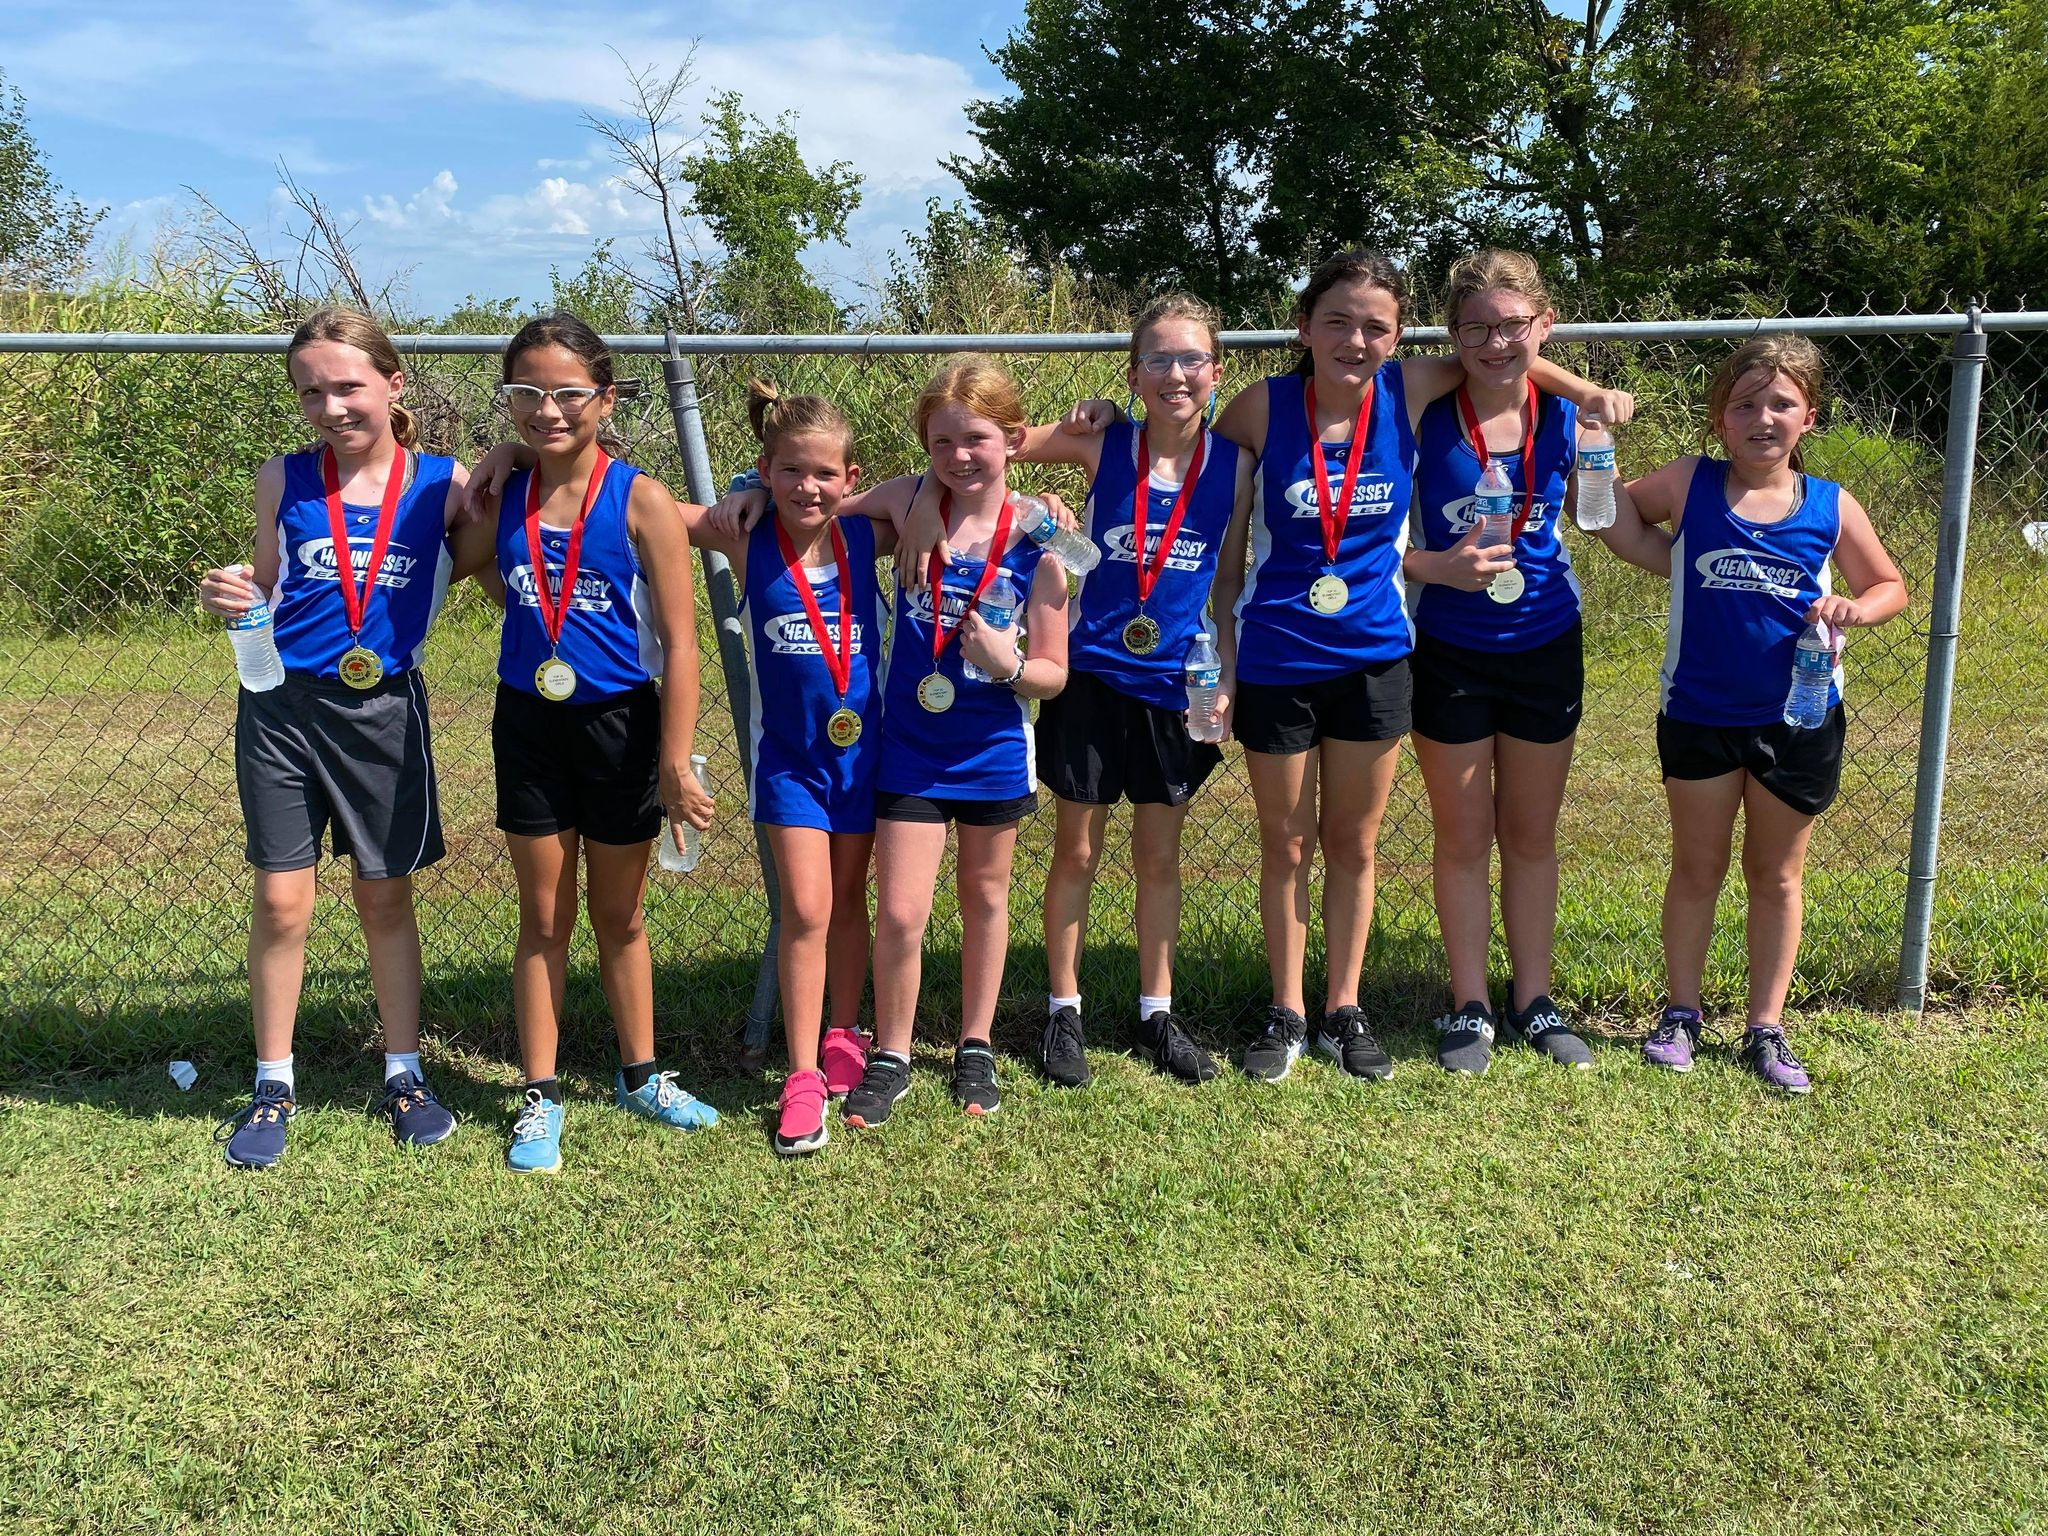 CONGRATULATIONS 6TH AND UNDER CROSS COUNTRY